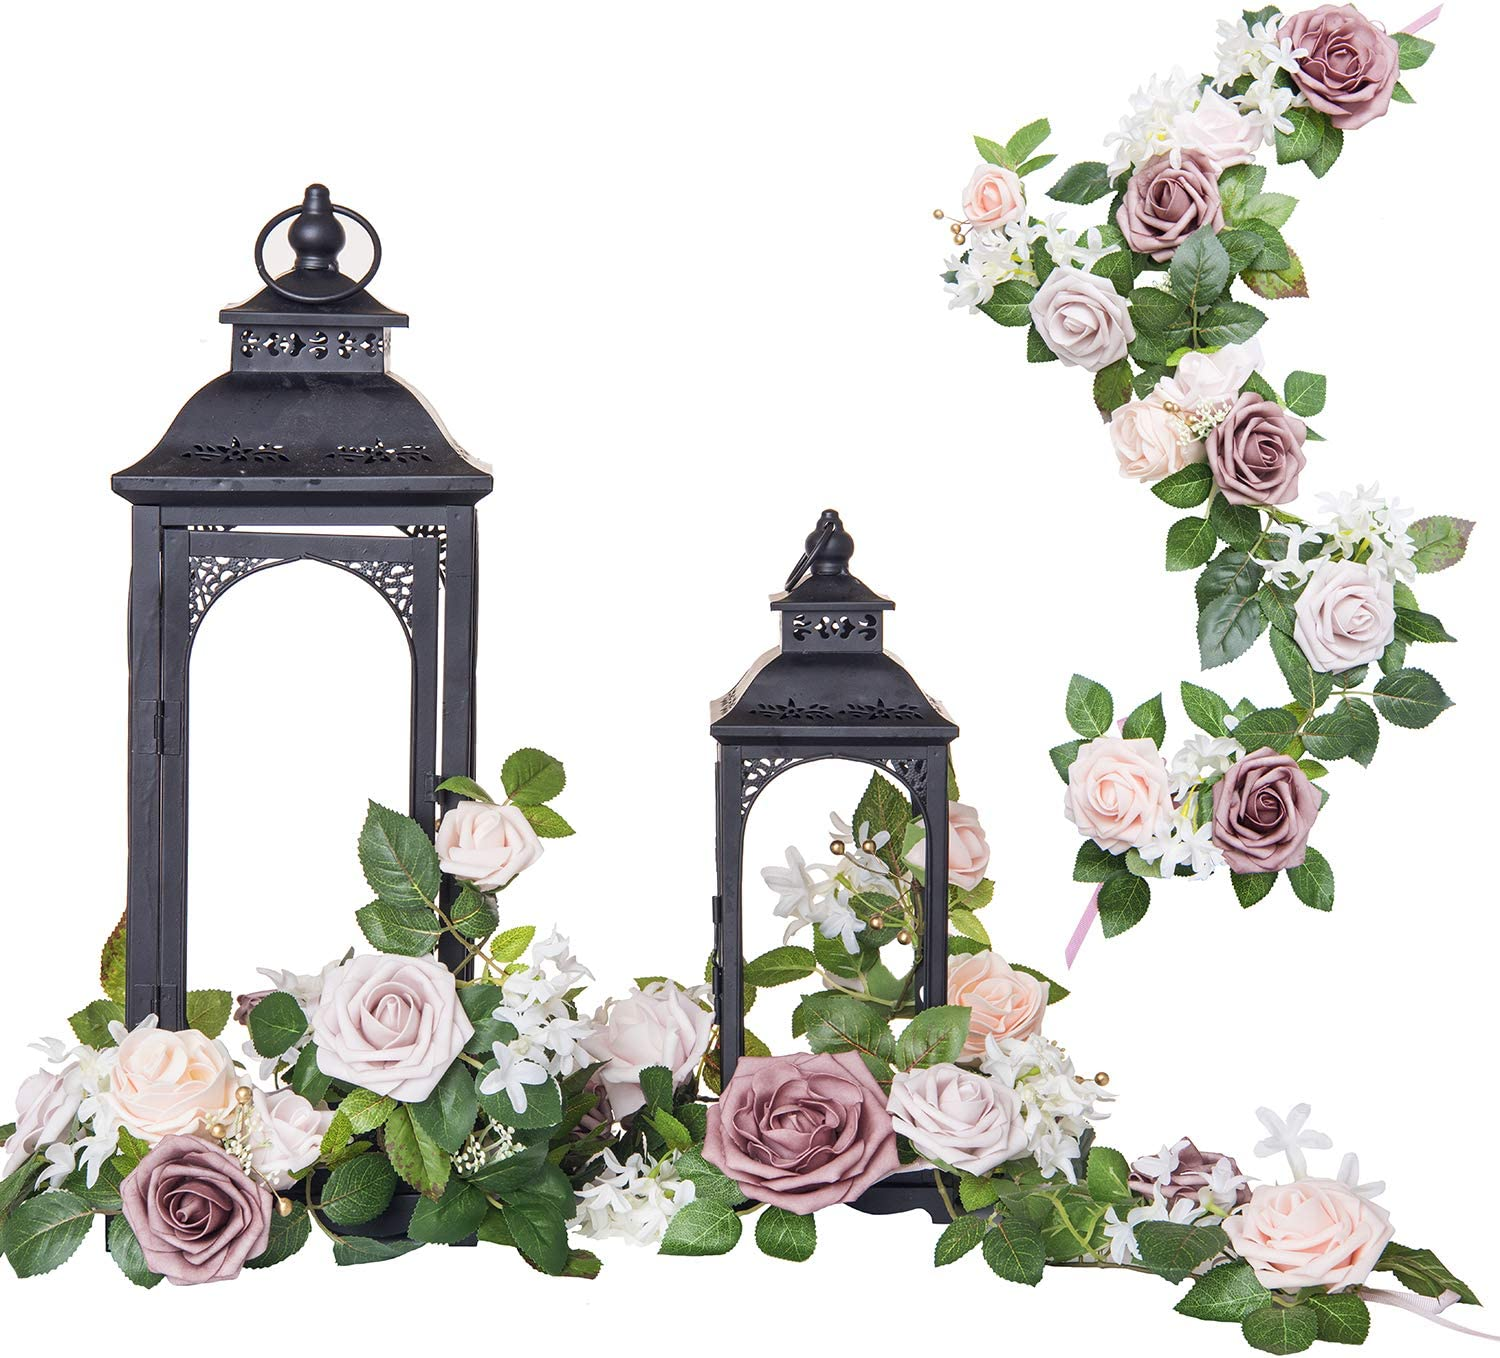 Ling's moment Handcrafted Rose Flower Garland Floral Arrangements Pack of 6 for Wedding Table Centerpieces Floral Runner Lantern Wreath Decorations (Blush+Dusty Rose)